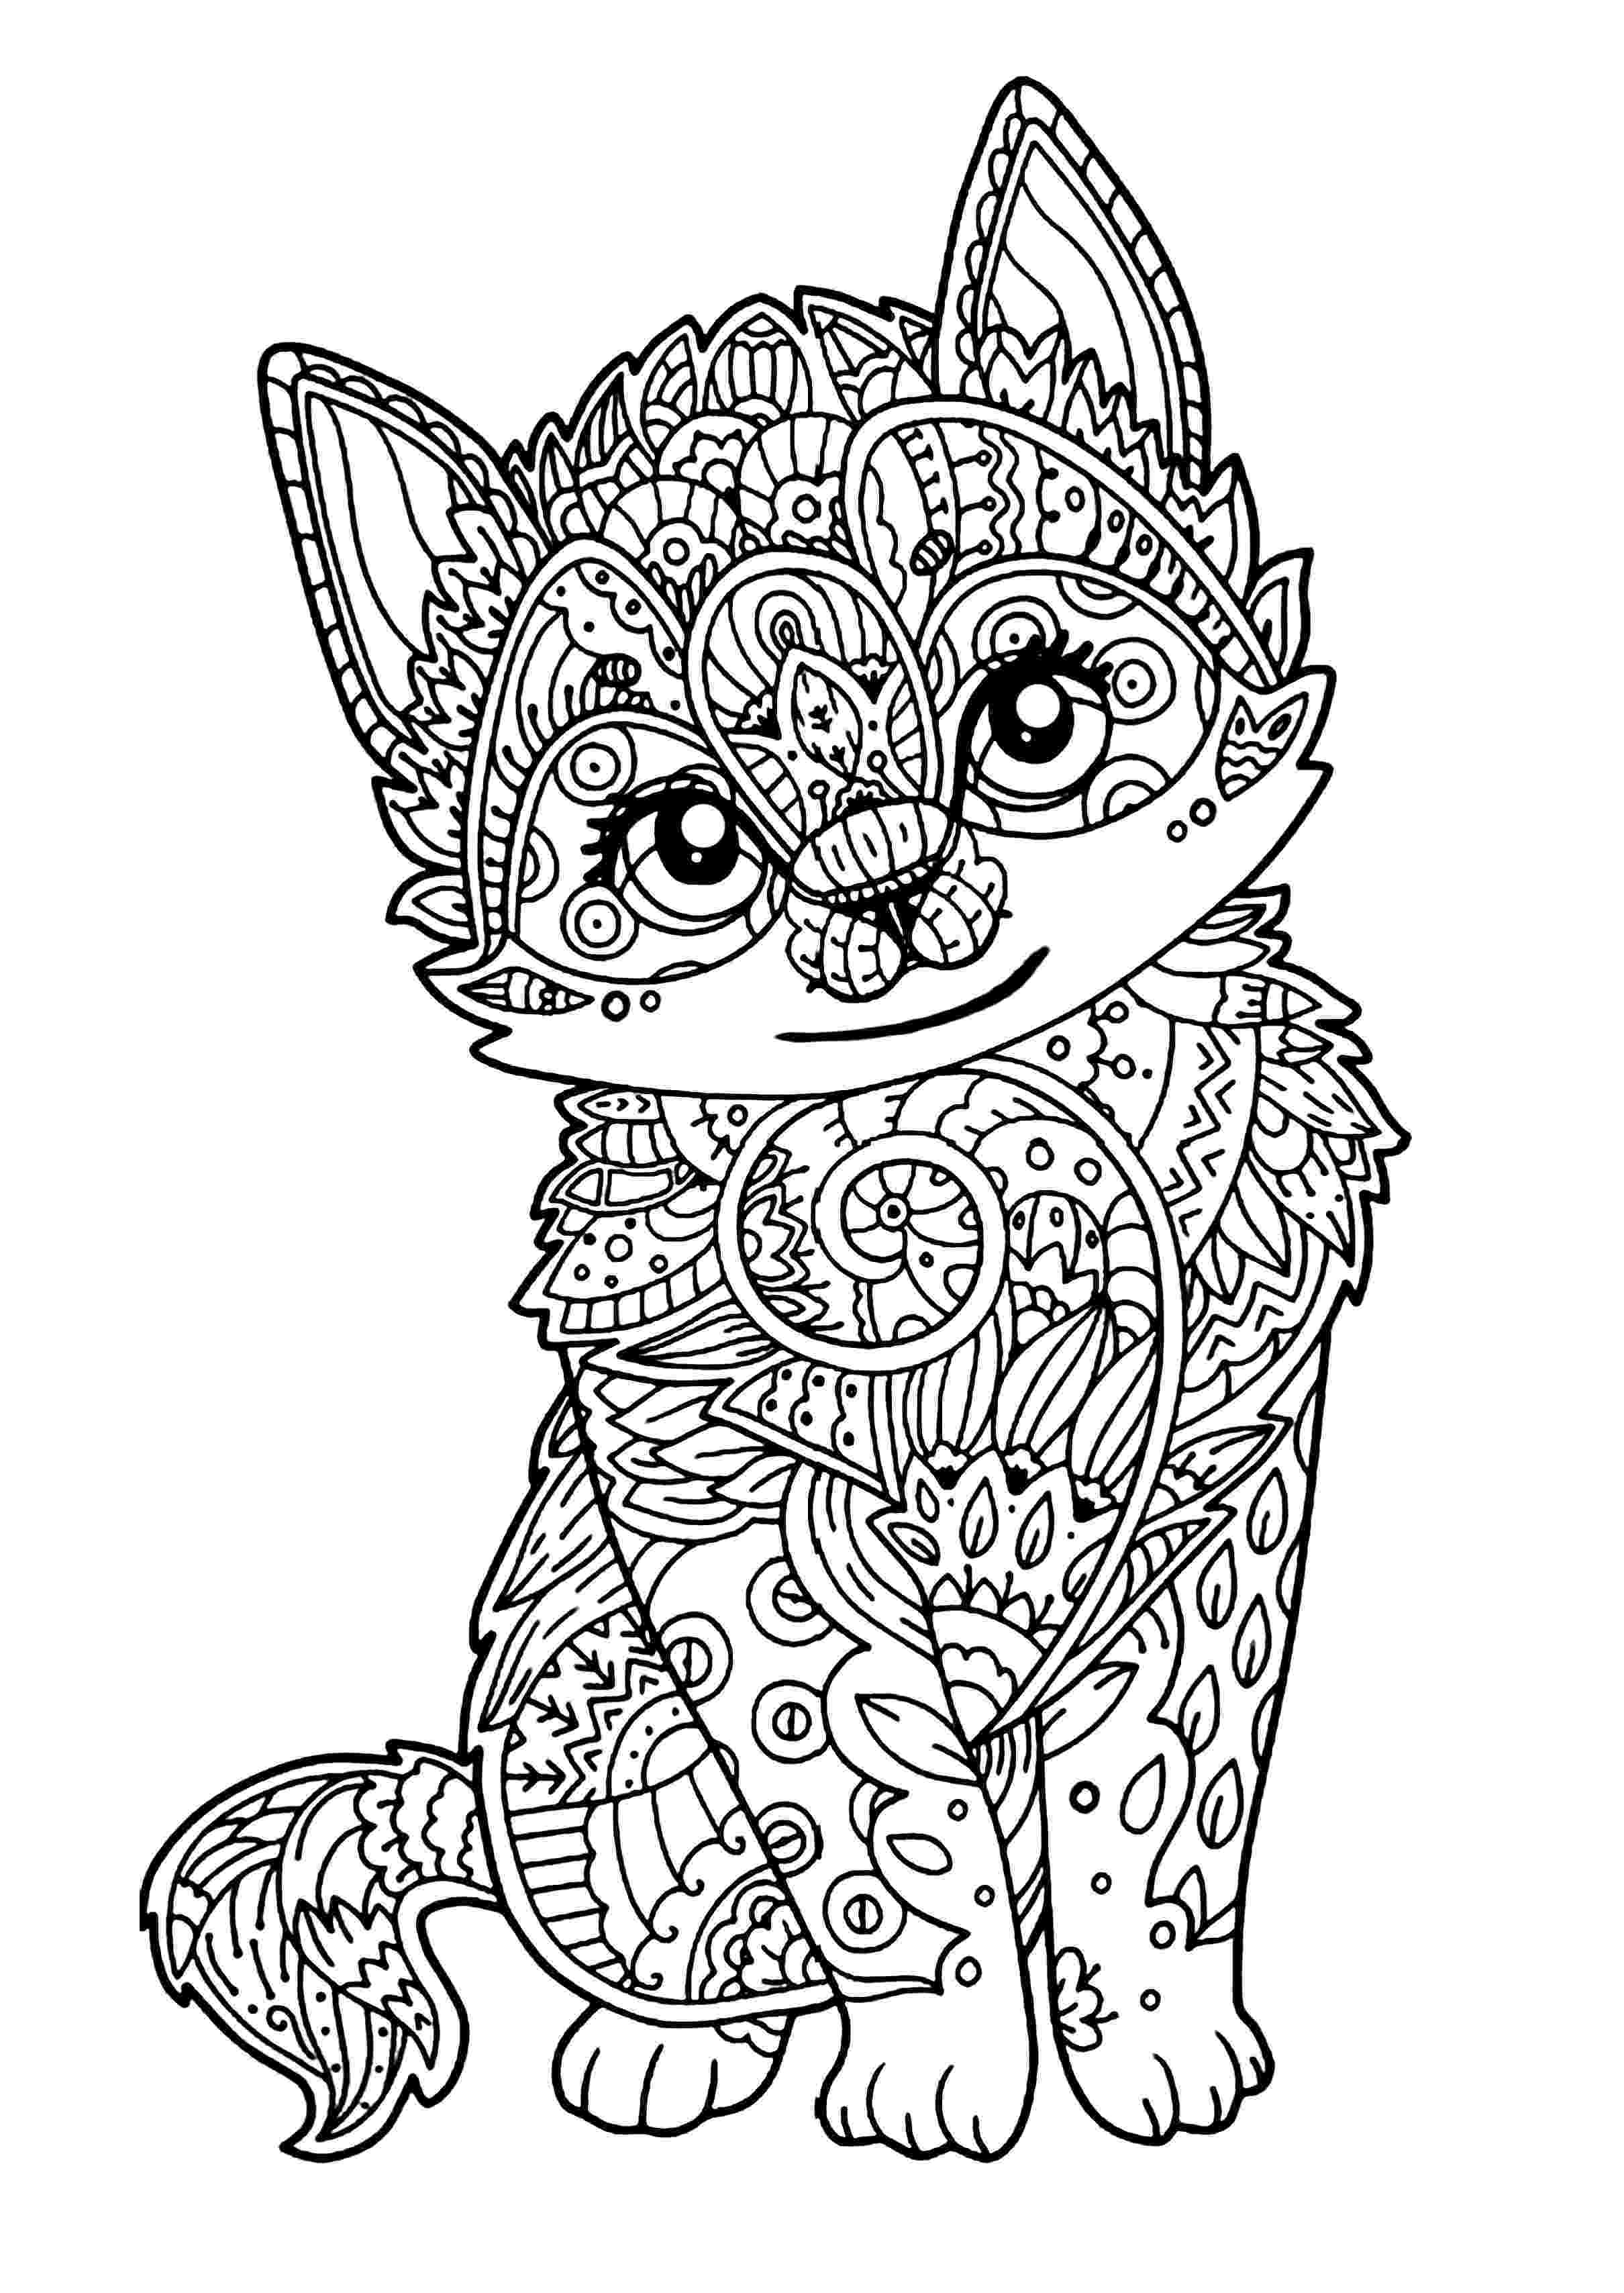 cute kitten colouring pages navishta sketch sweet cute angle cats pages kitten colouring cute